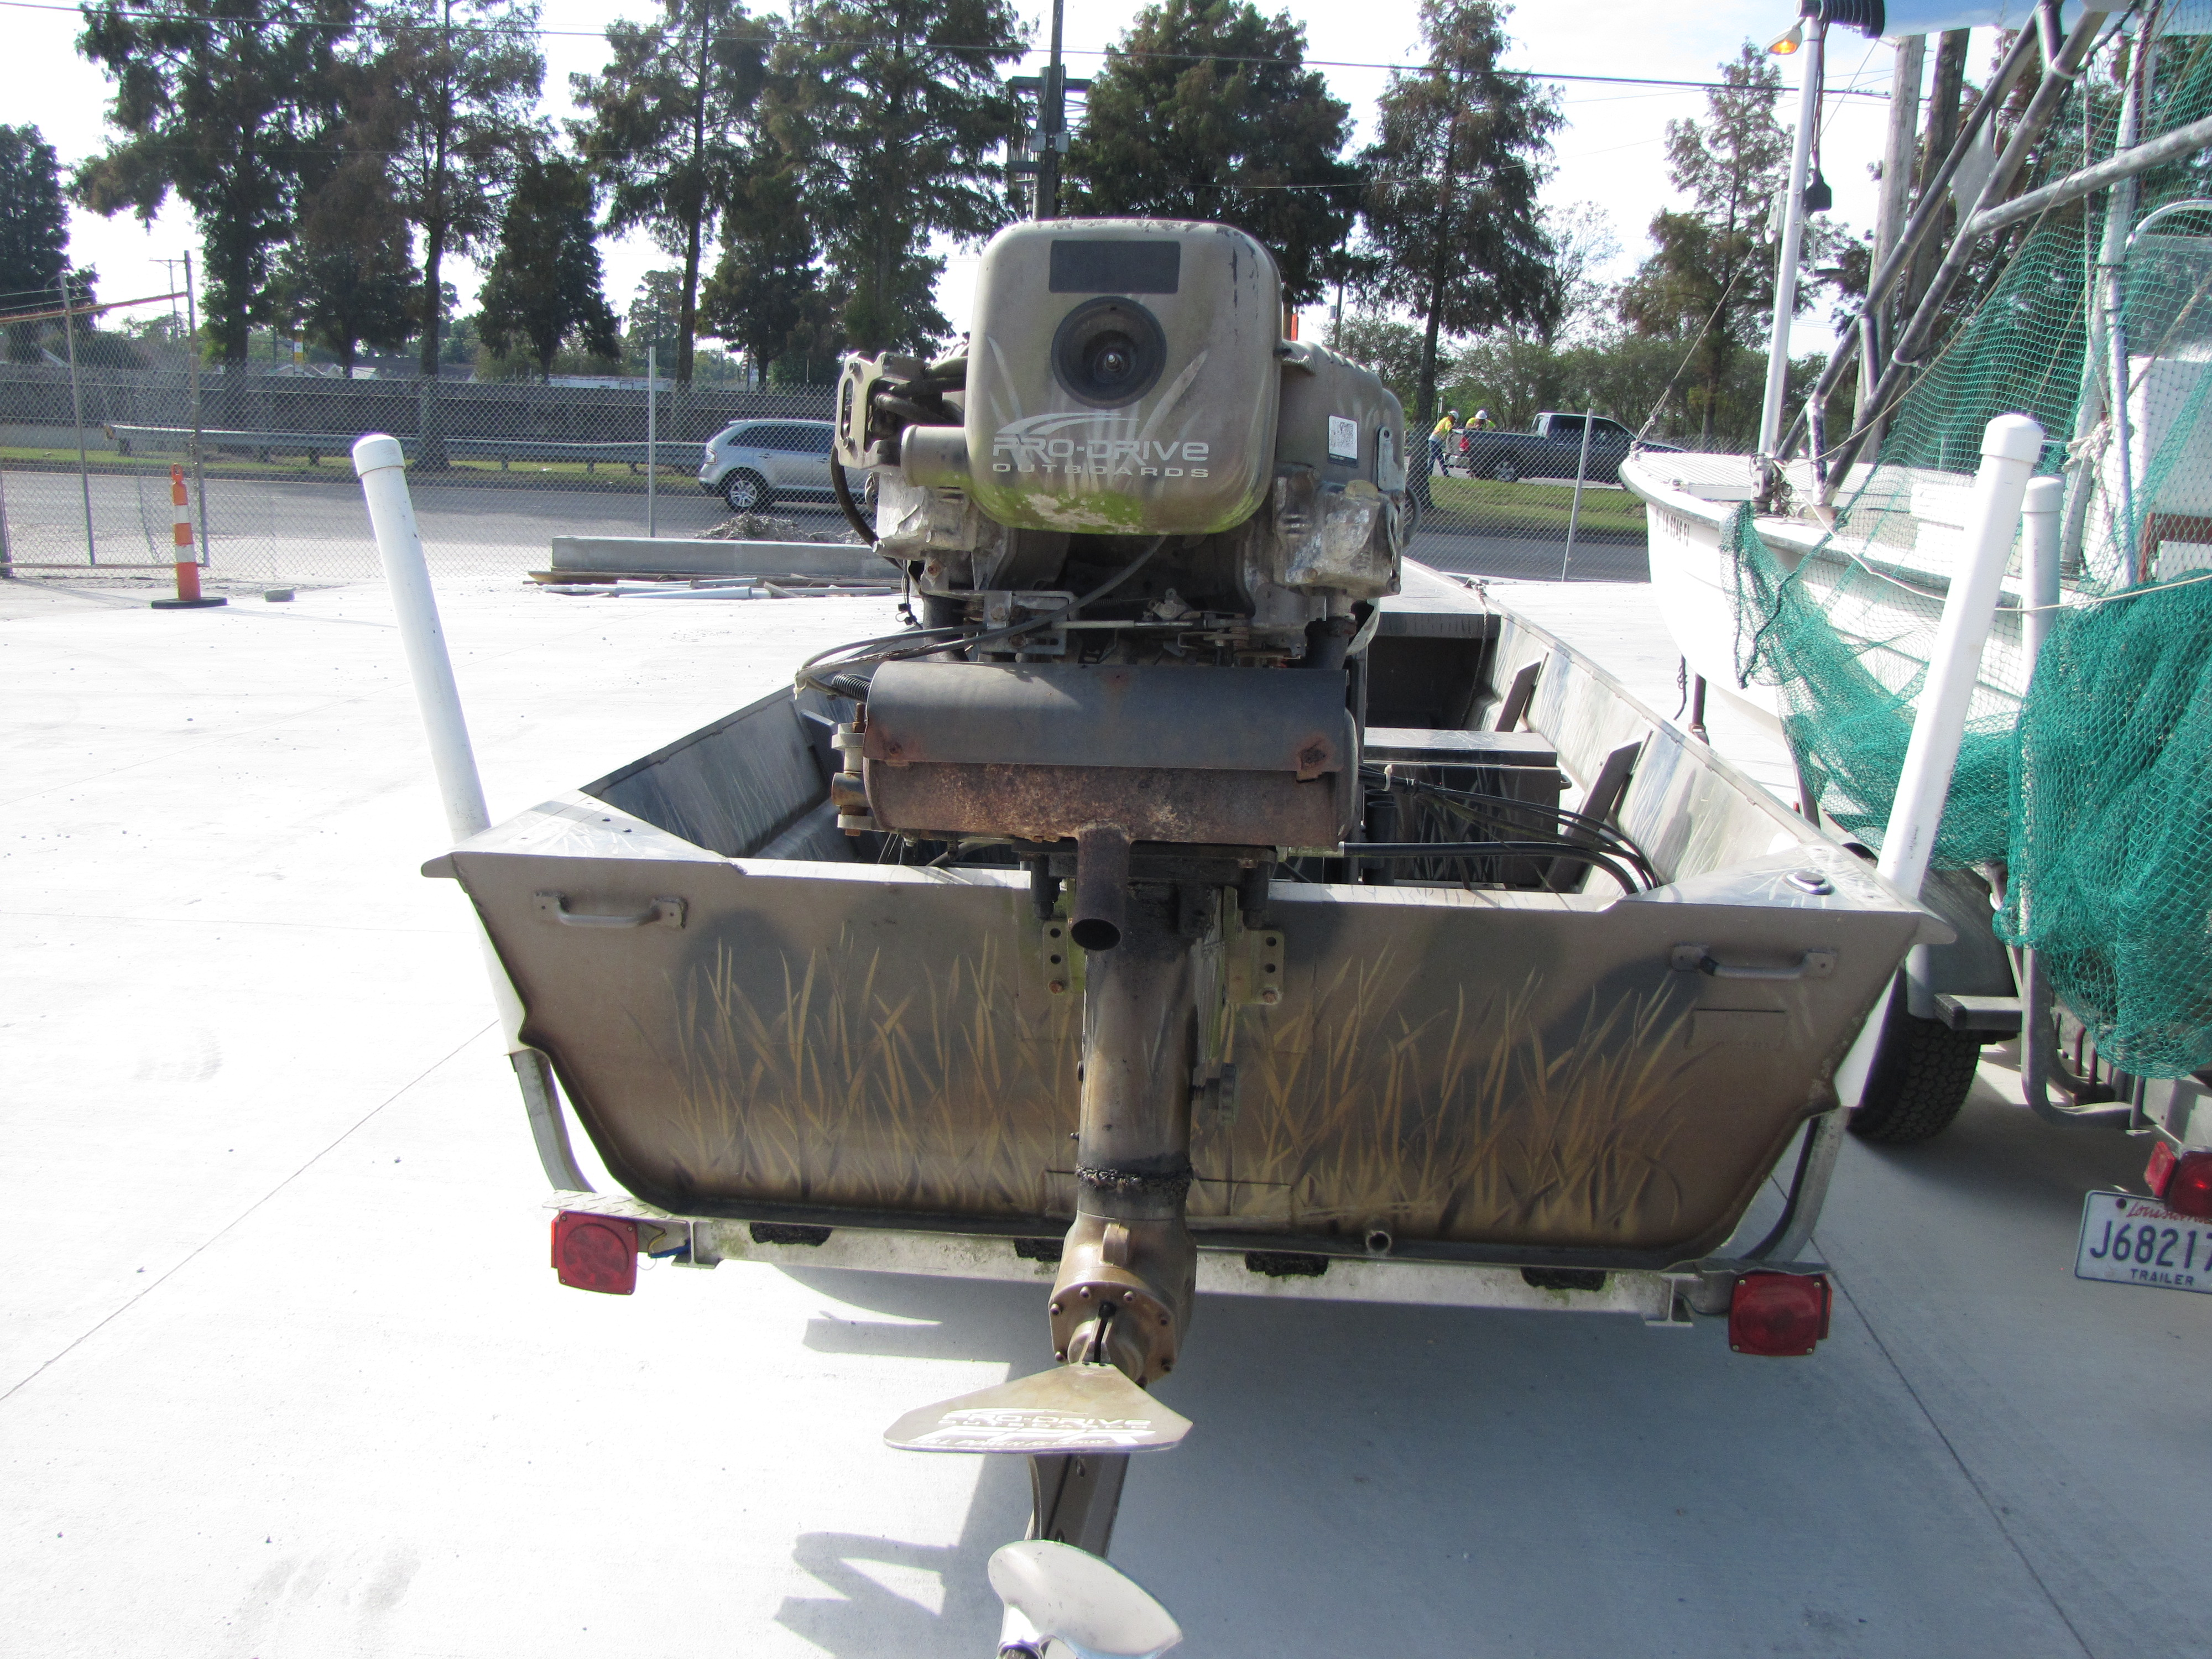 2013 Pro-Drive boat for sale, model of the boat is 1754 & Image # 2 of 13